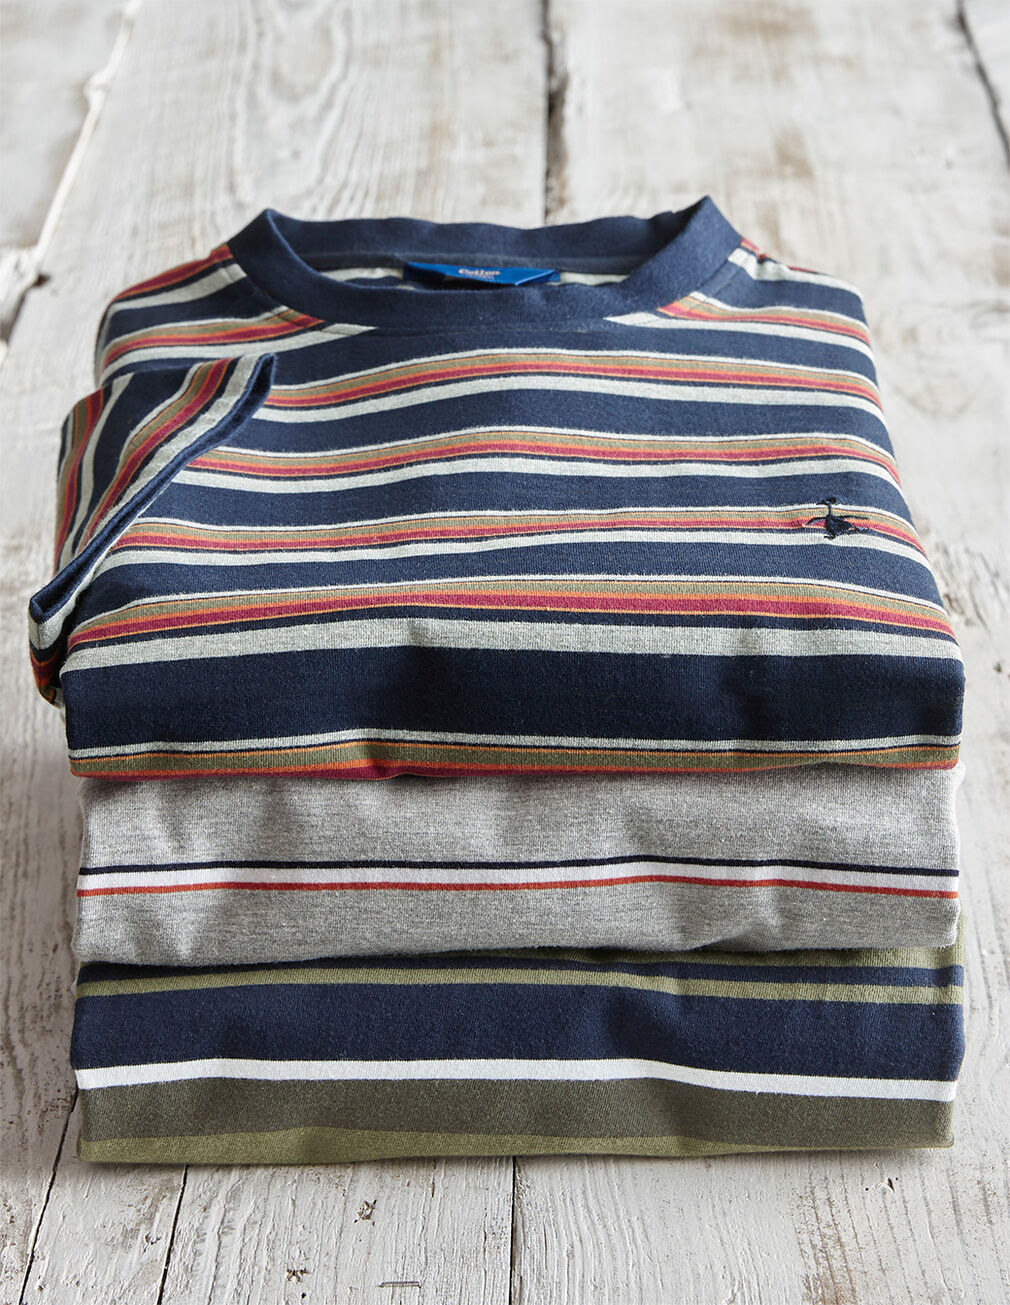 The Charismatic Goose | Organic Striped T-shirt | By Cotton Traders